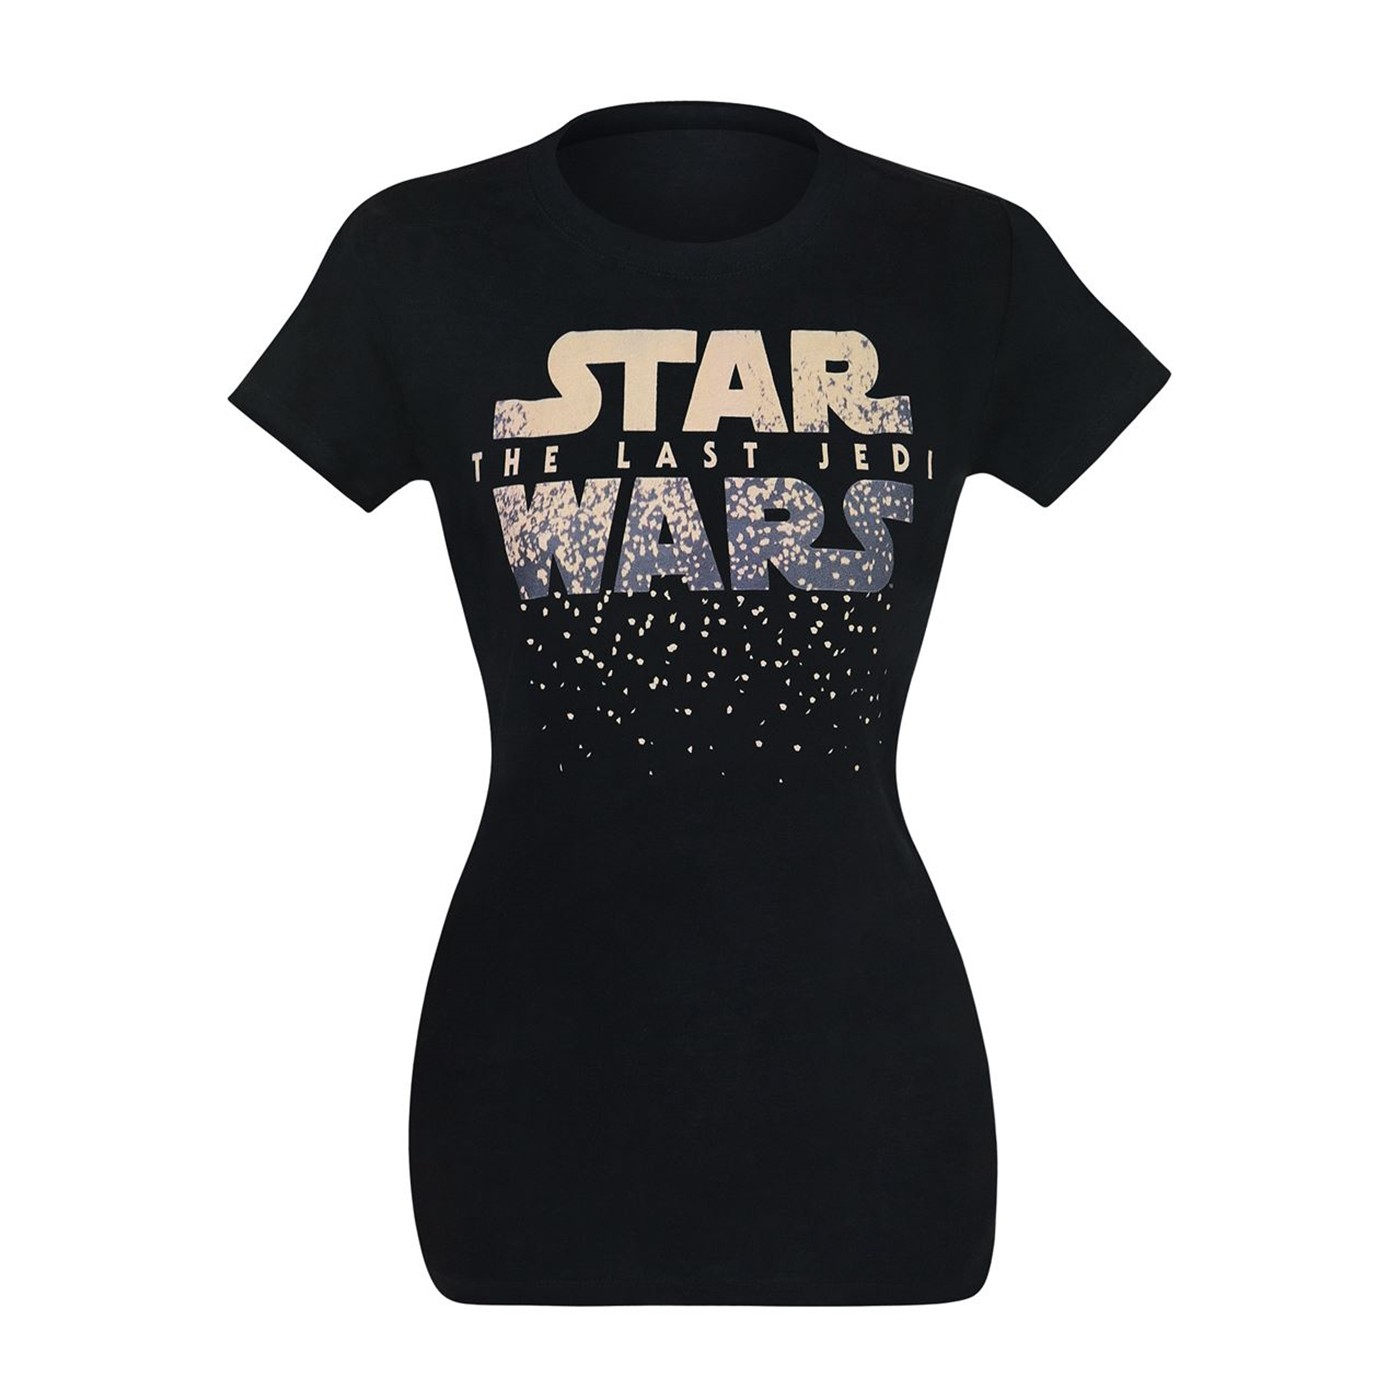 Star Wars Last Jedi Logo Women's T-Shirt